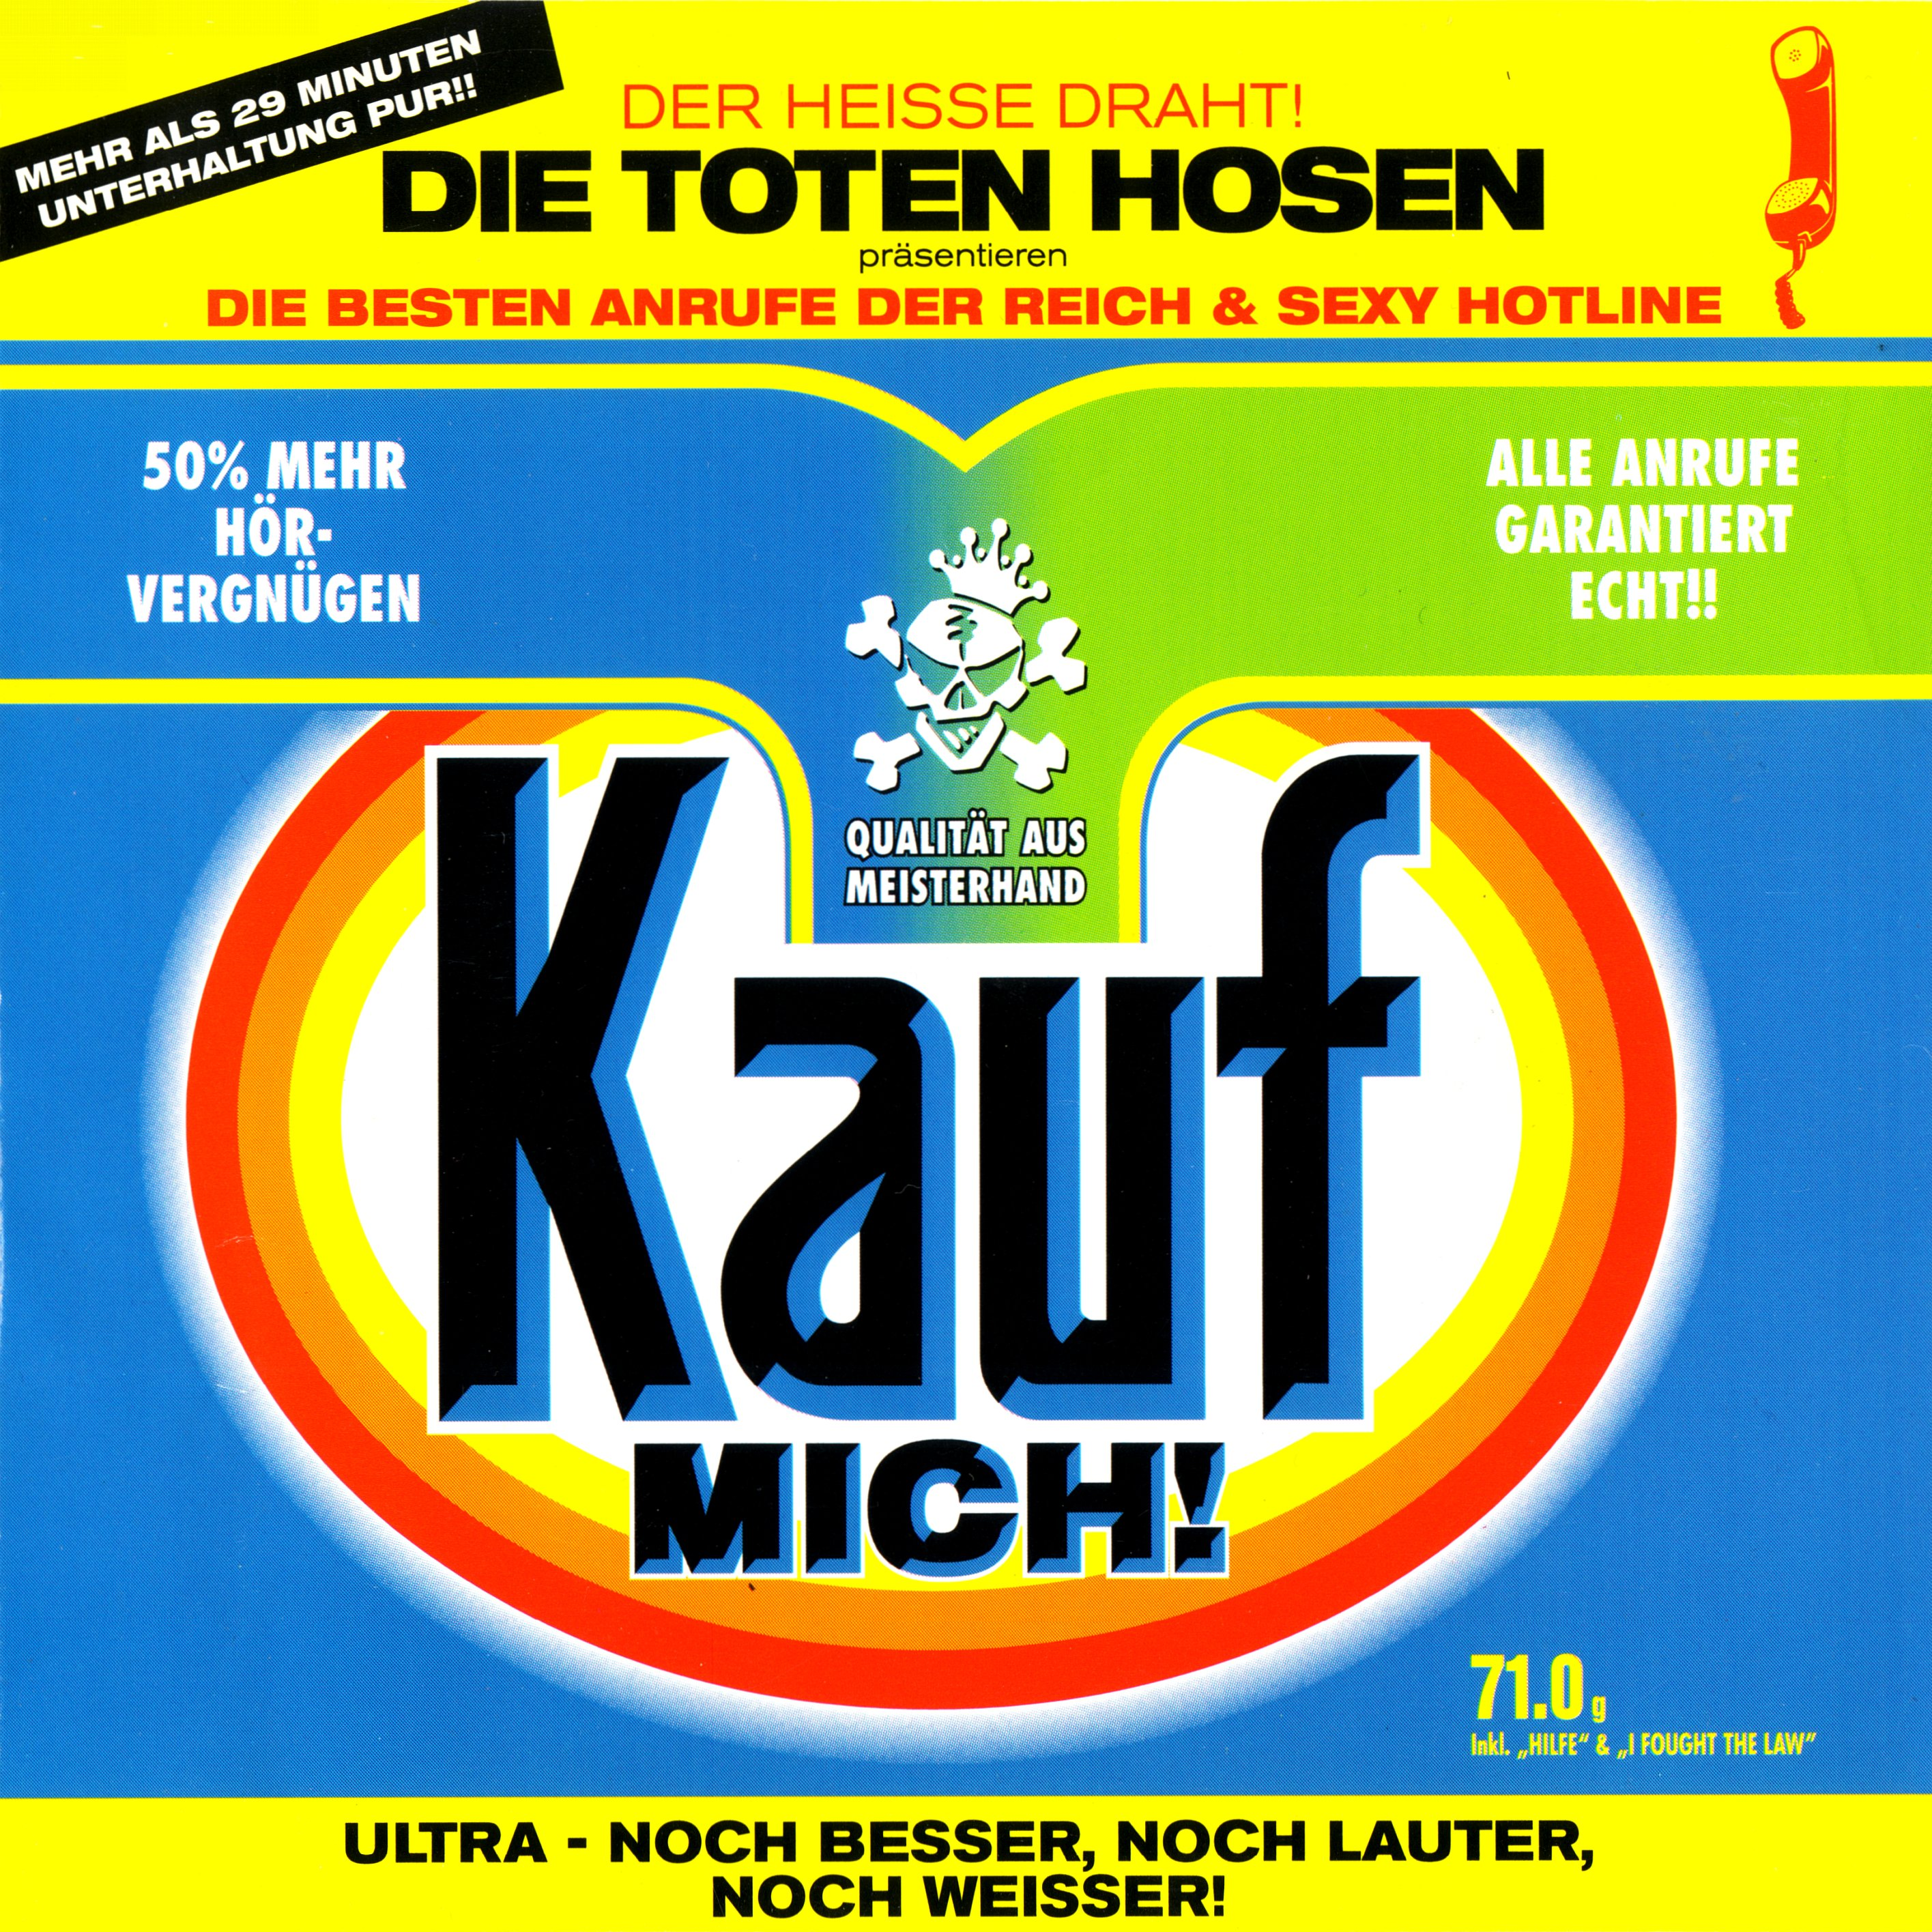 https://upload.wikimedia.org/wikipedia/de/2/22/Die_Toten_Hosen_-_Kauf_Mich_!_(Single_Cover).jpg